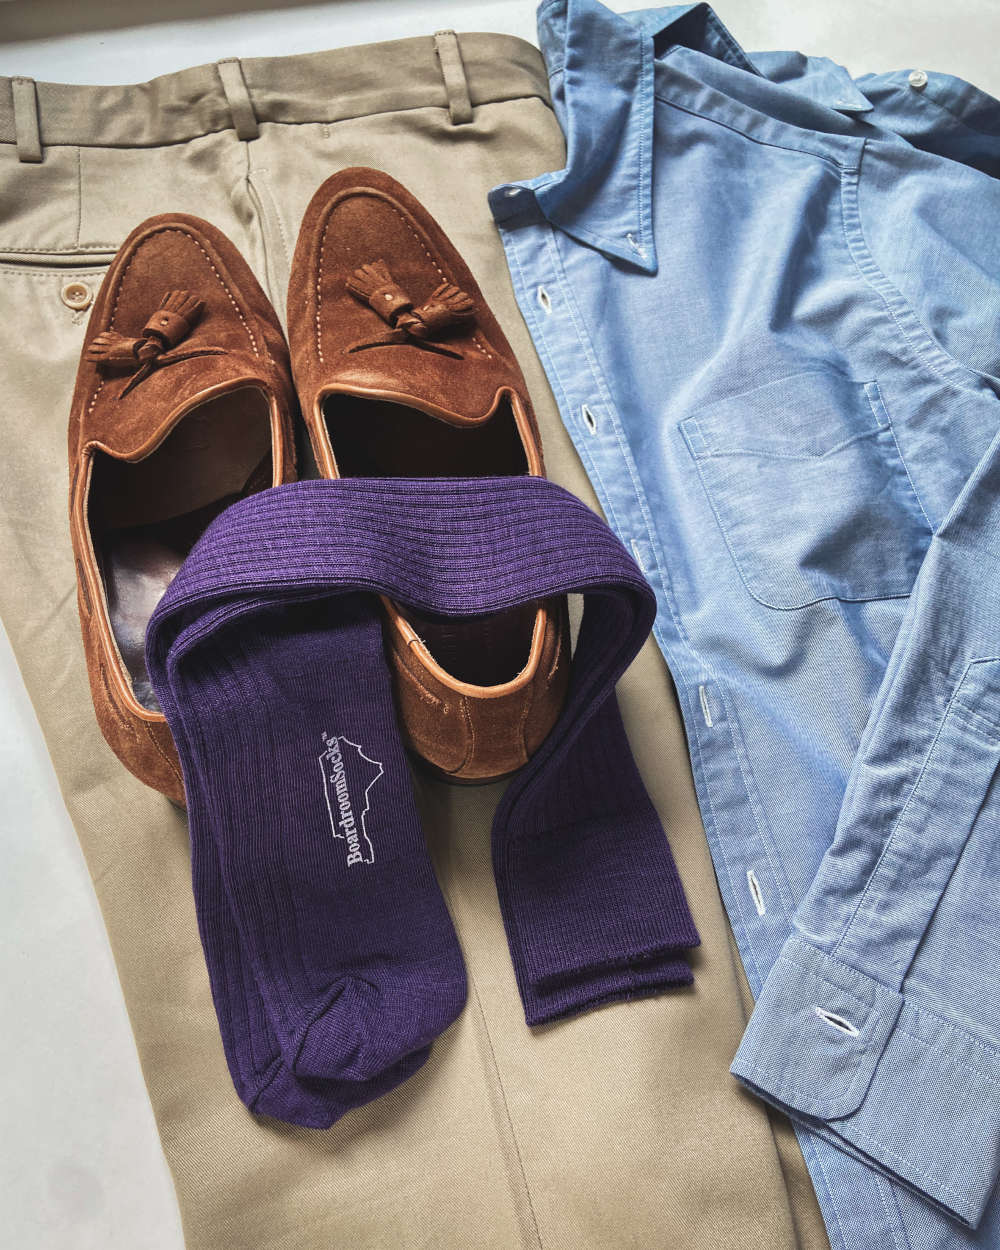 purple merino wool over the calf dress socks laying on a pair of brown suede loafers and khakis